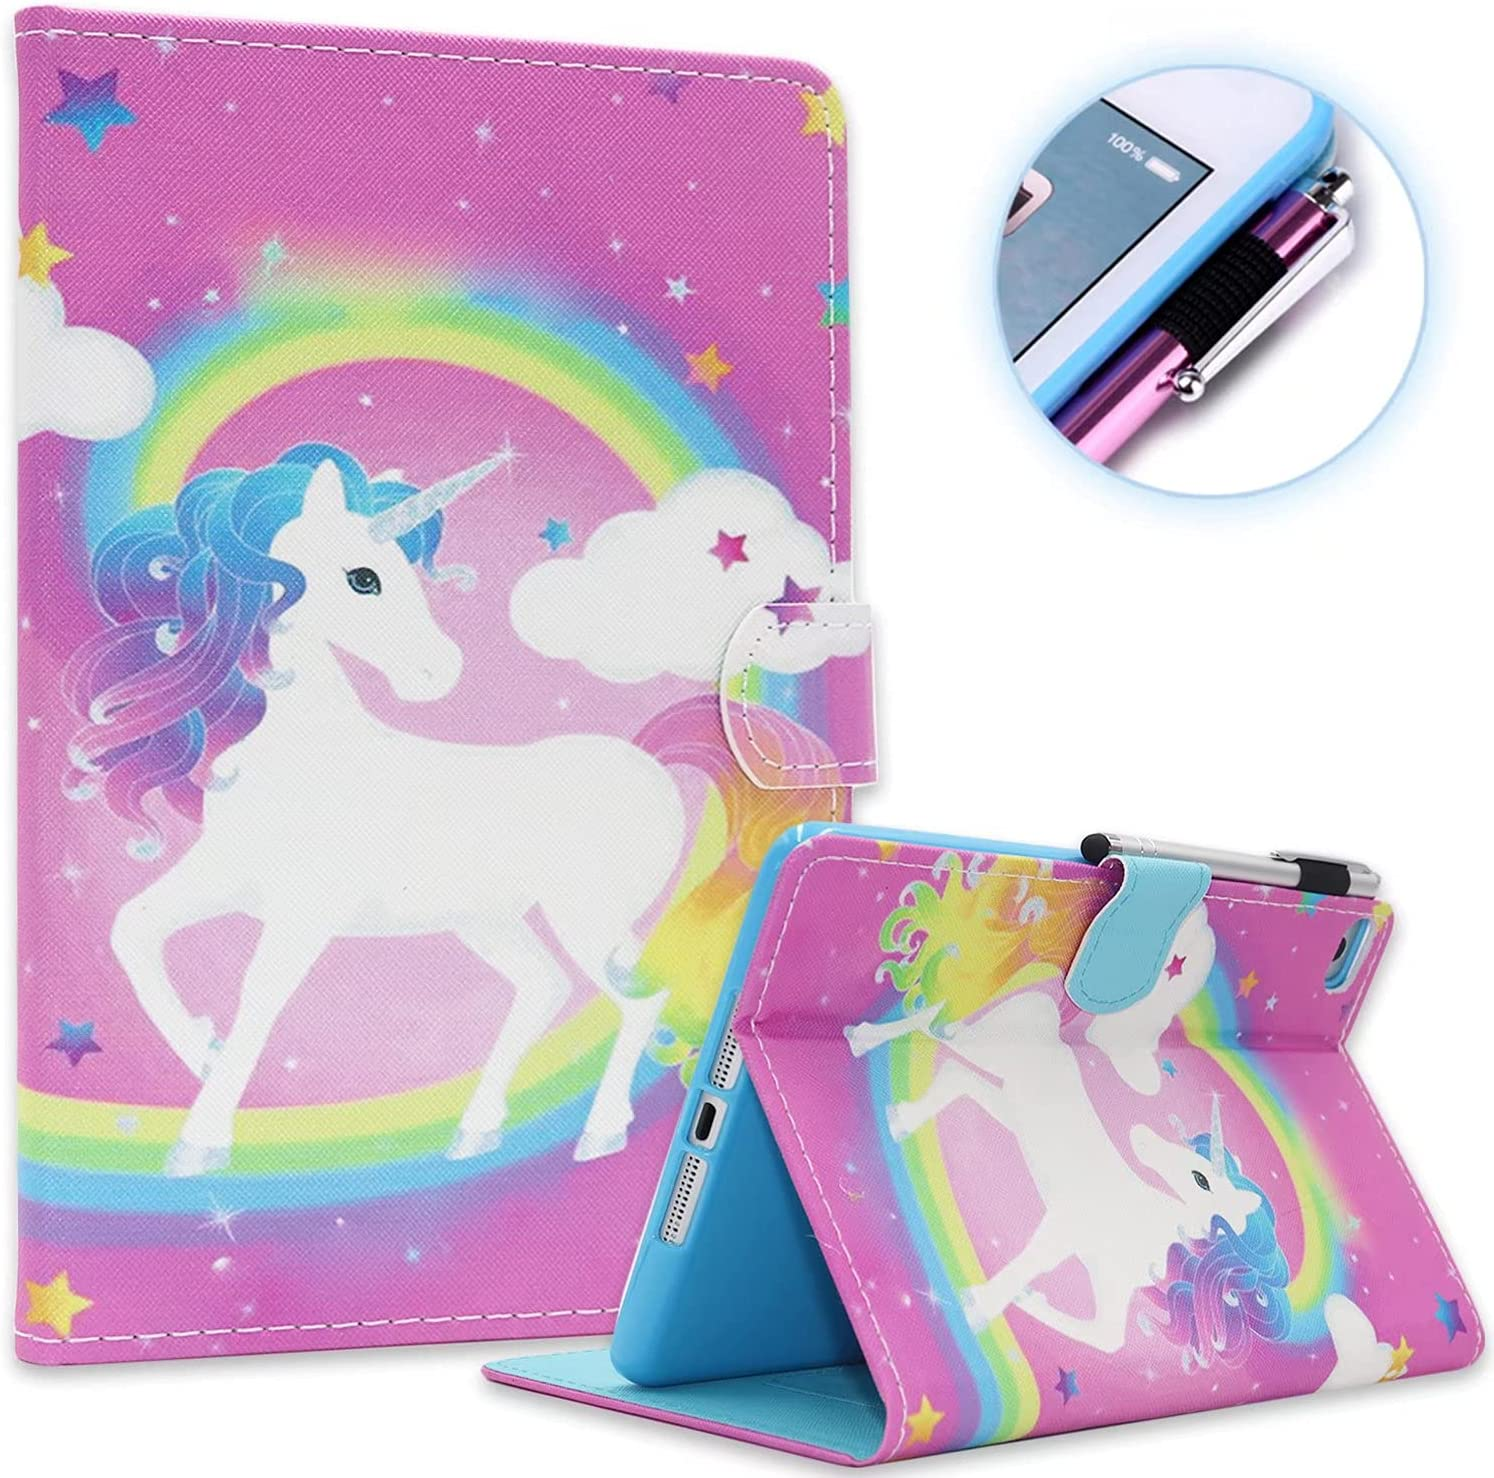 Fancity for iPad 9th Max 54% OFF 8th Generation Case 2021 2020 10.2 half Re inch